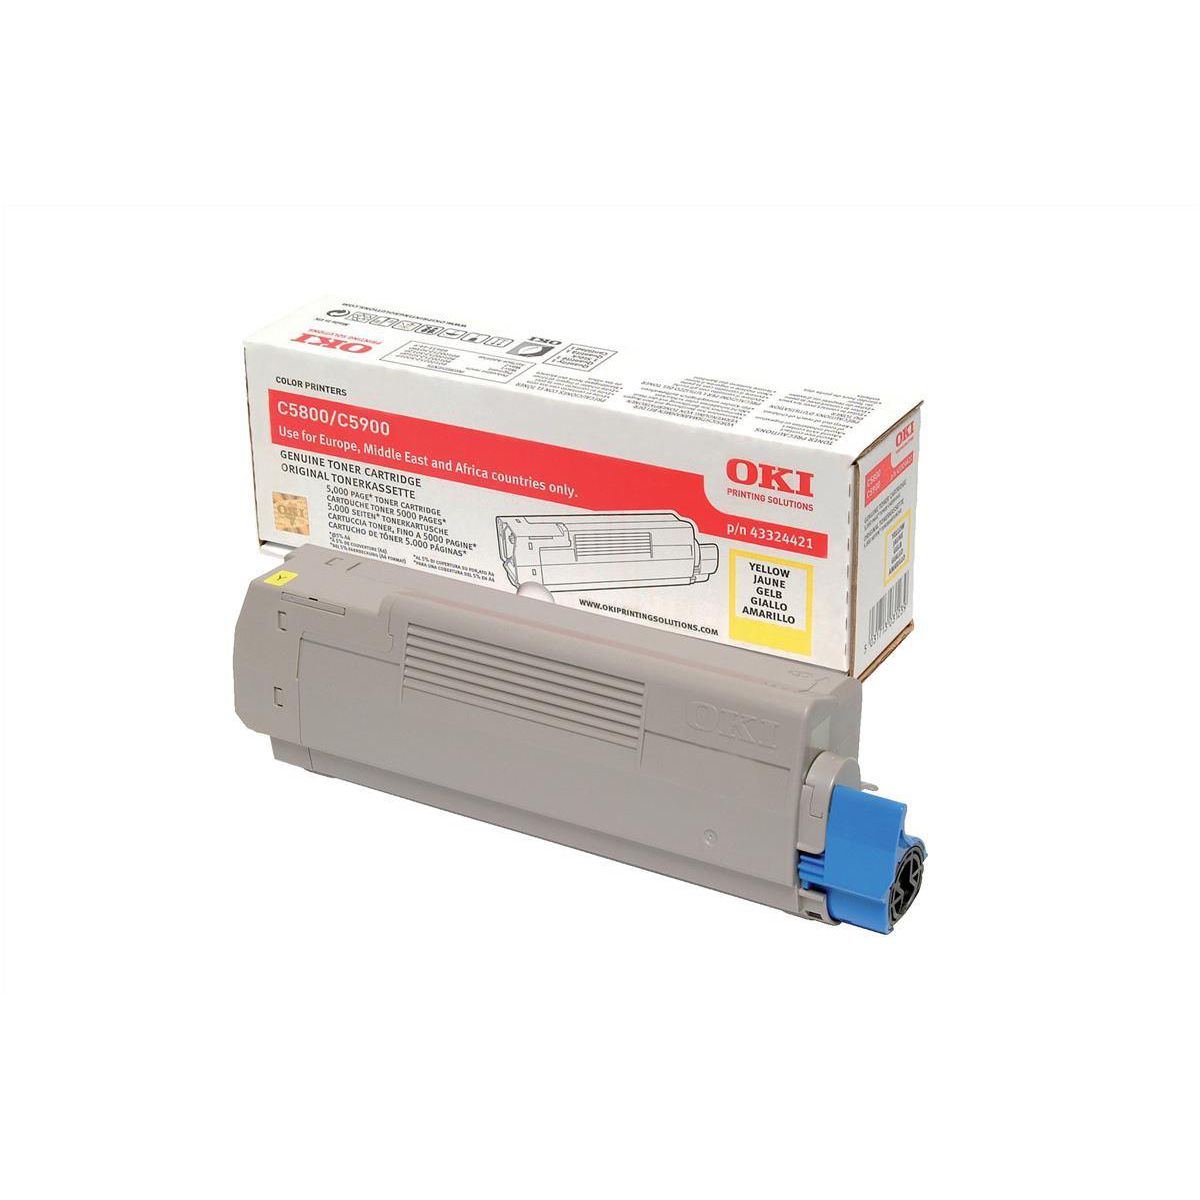 OKI Laser Toner Cartridge Page Life 5000pp Yellow Ref 43324421